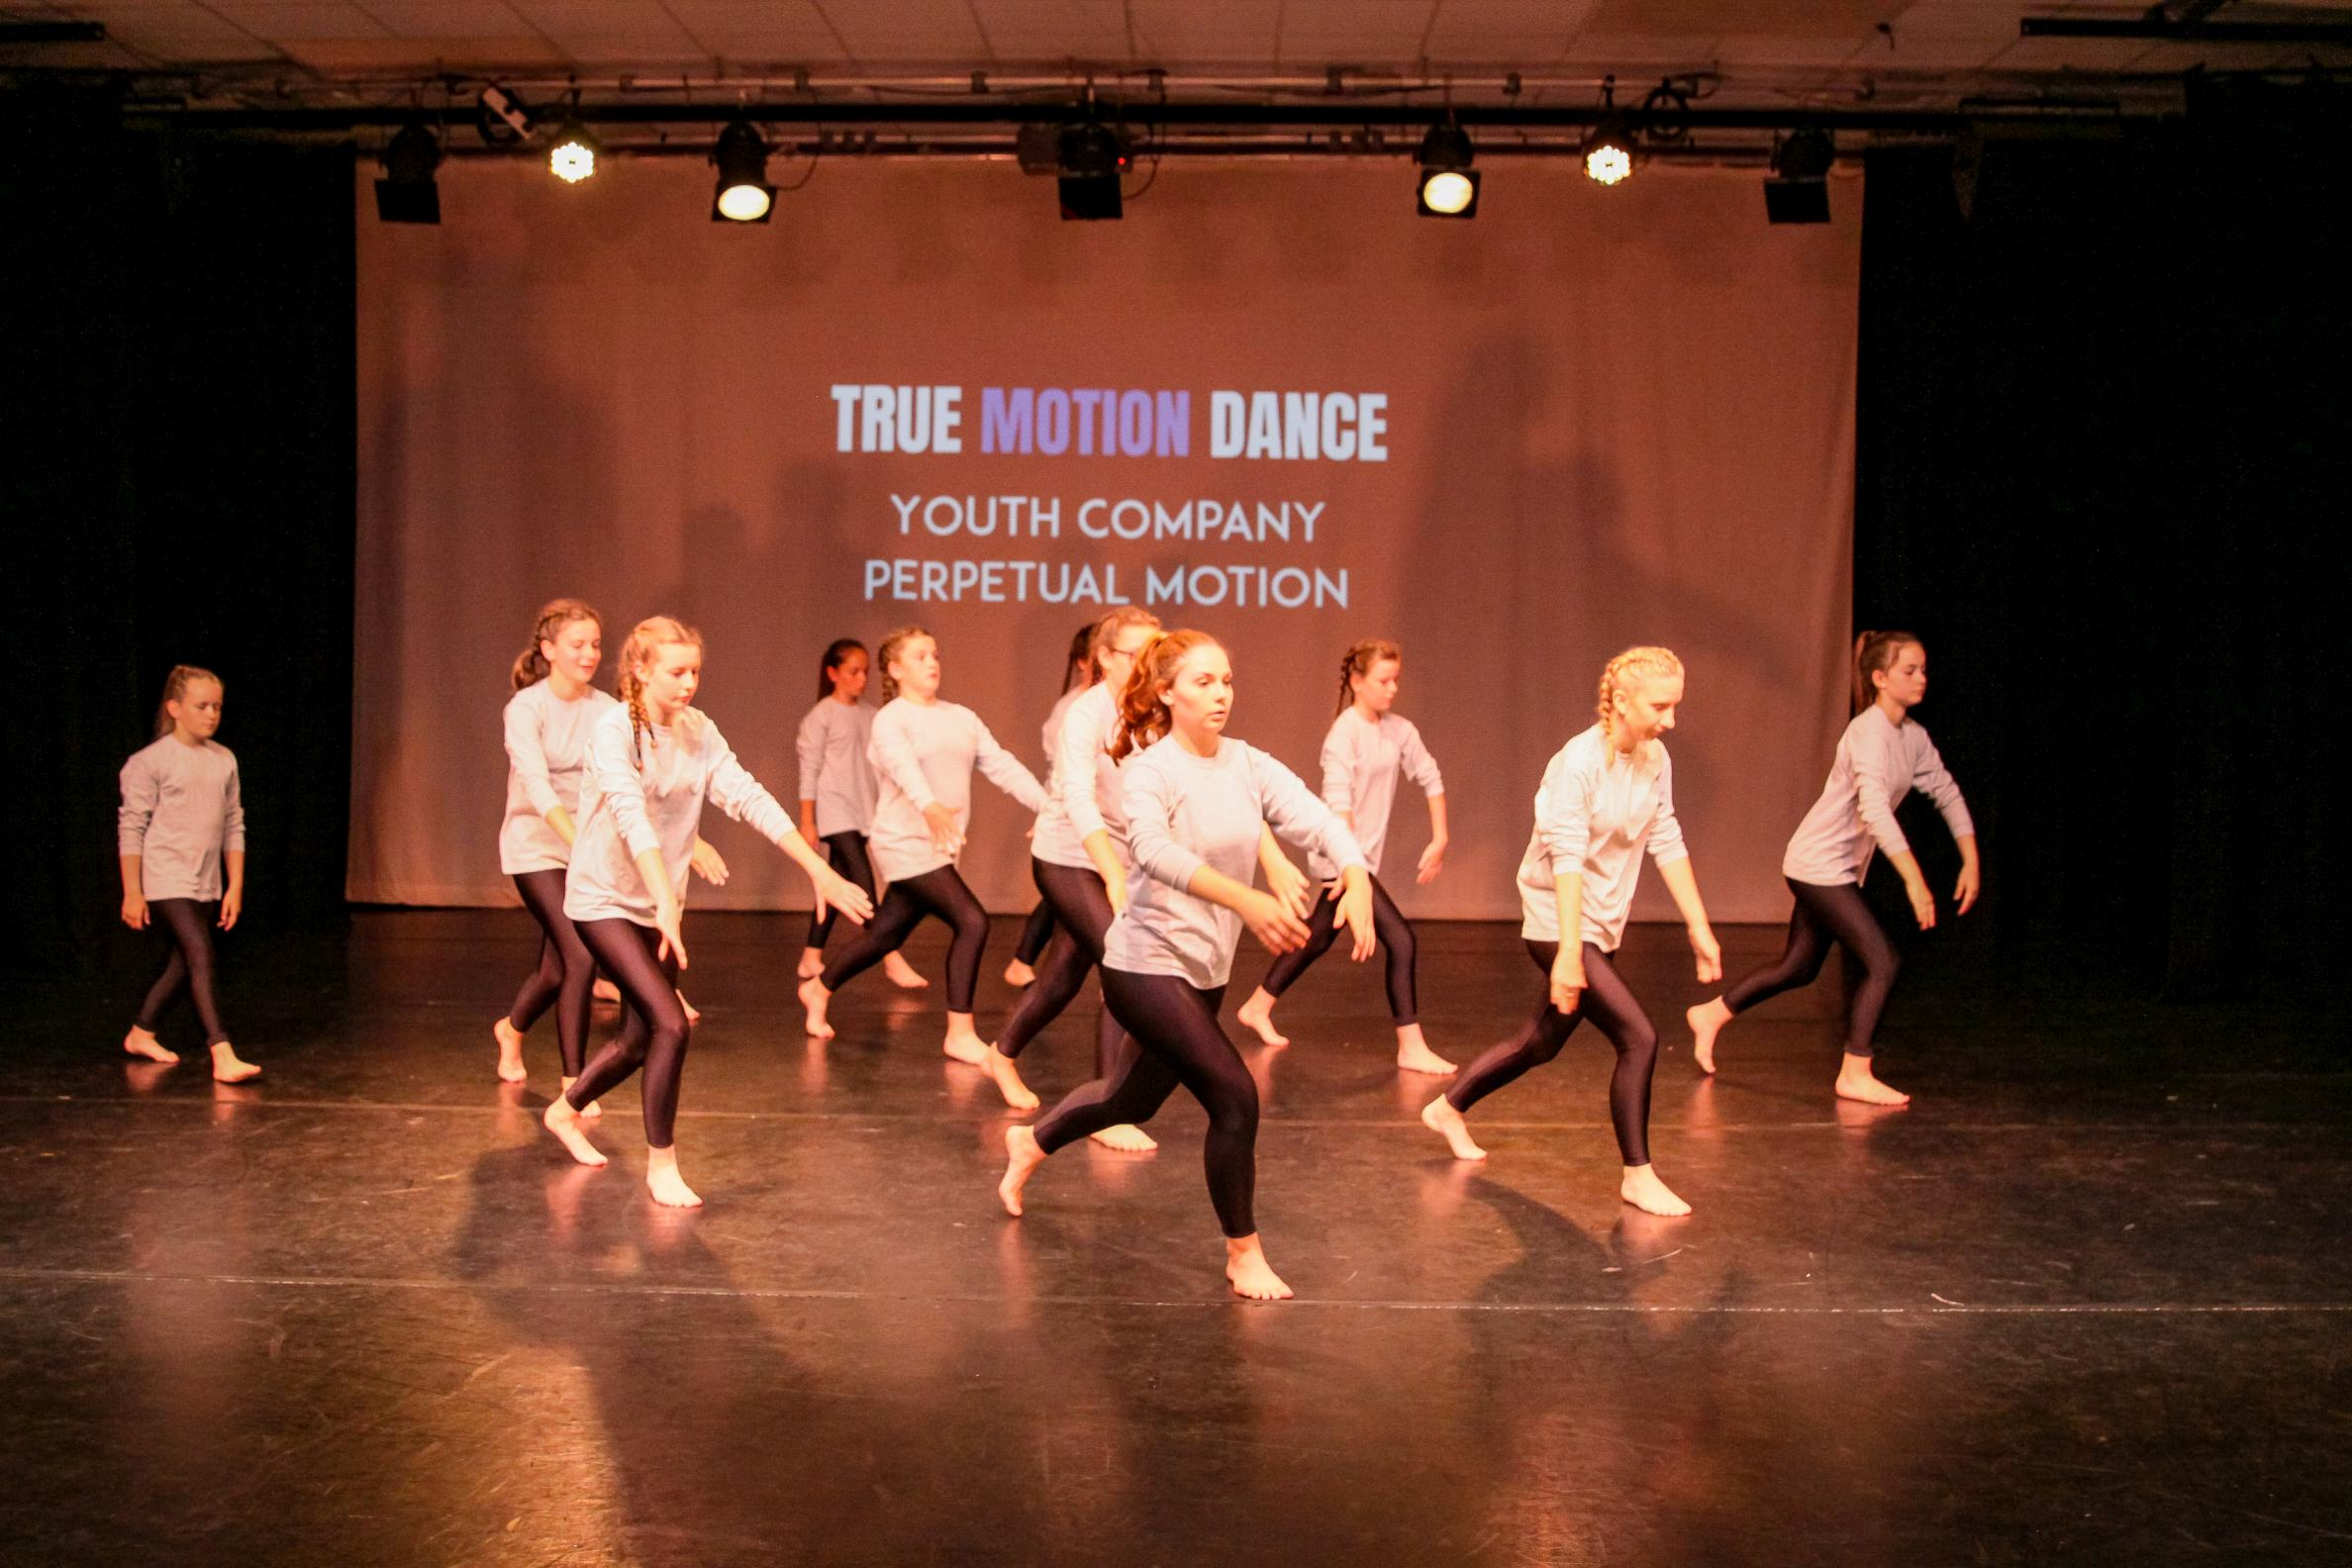 Elite youth dance company performance